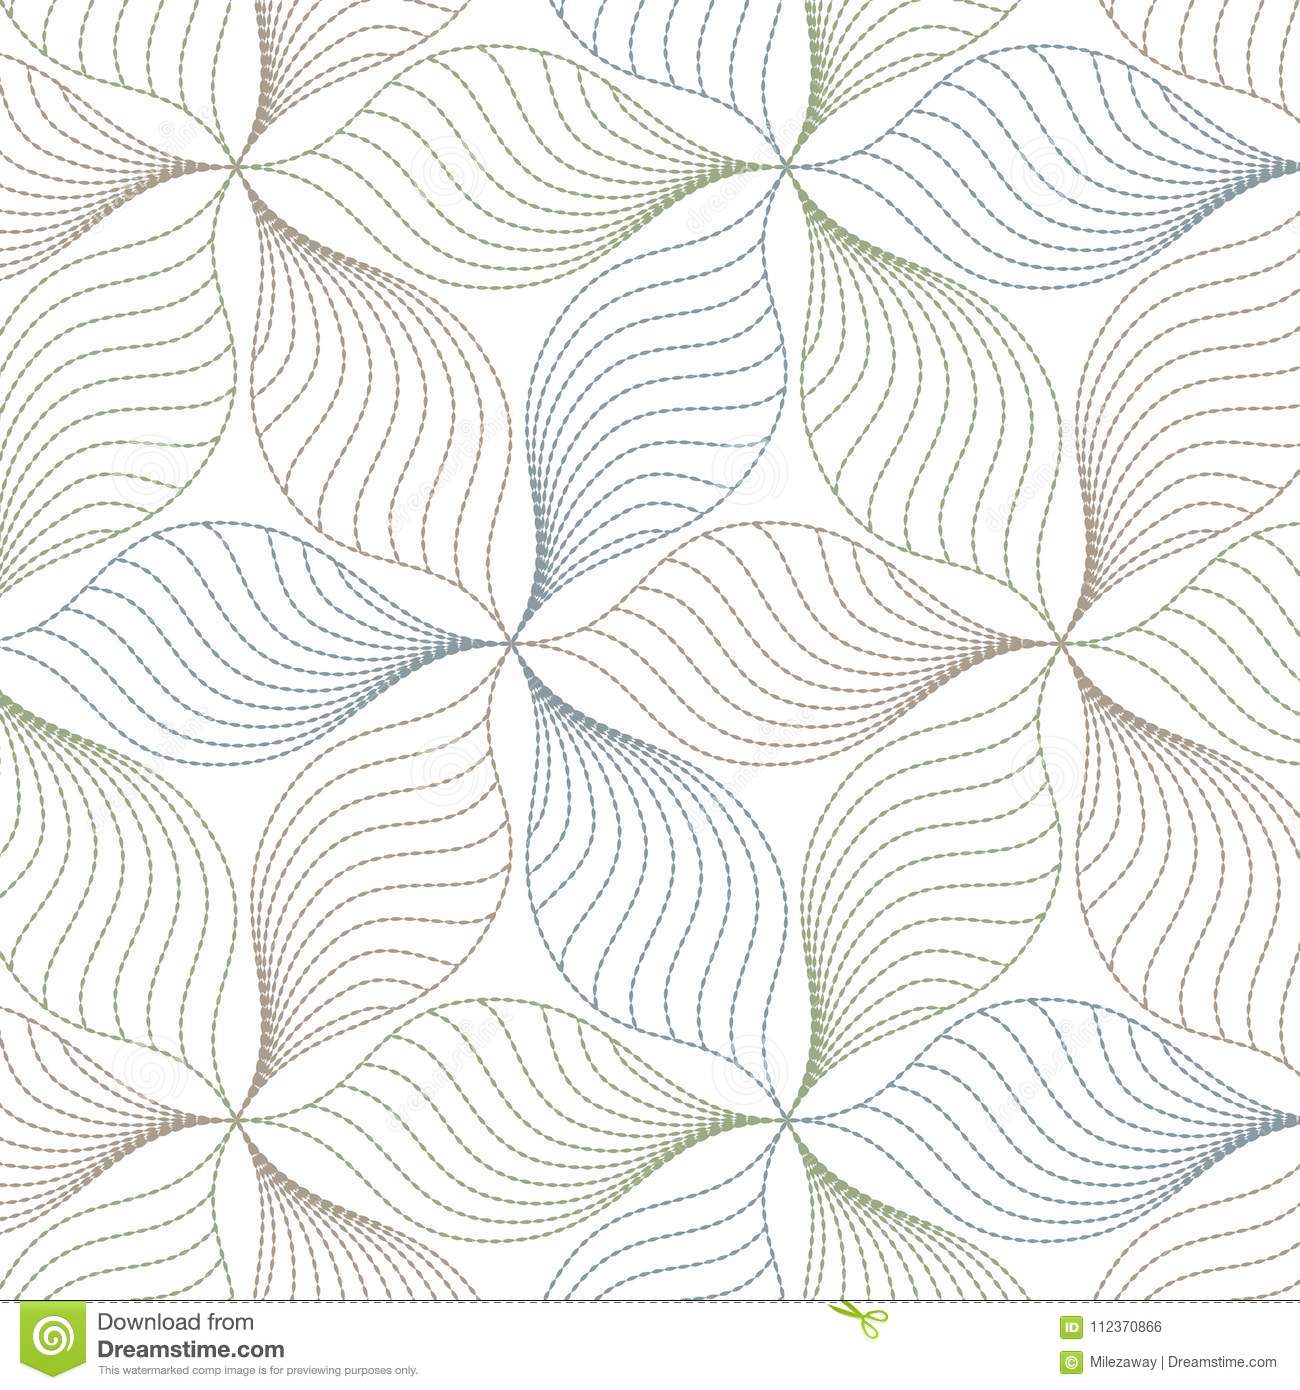 Linear Vector Pattern Repeating Abstract Leaves Line Of Leaf Or Flower Floral